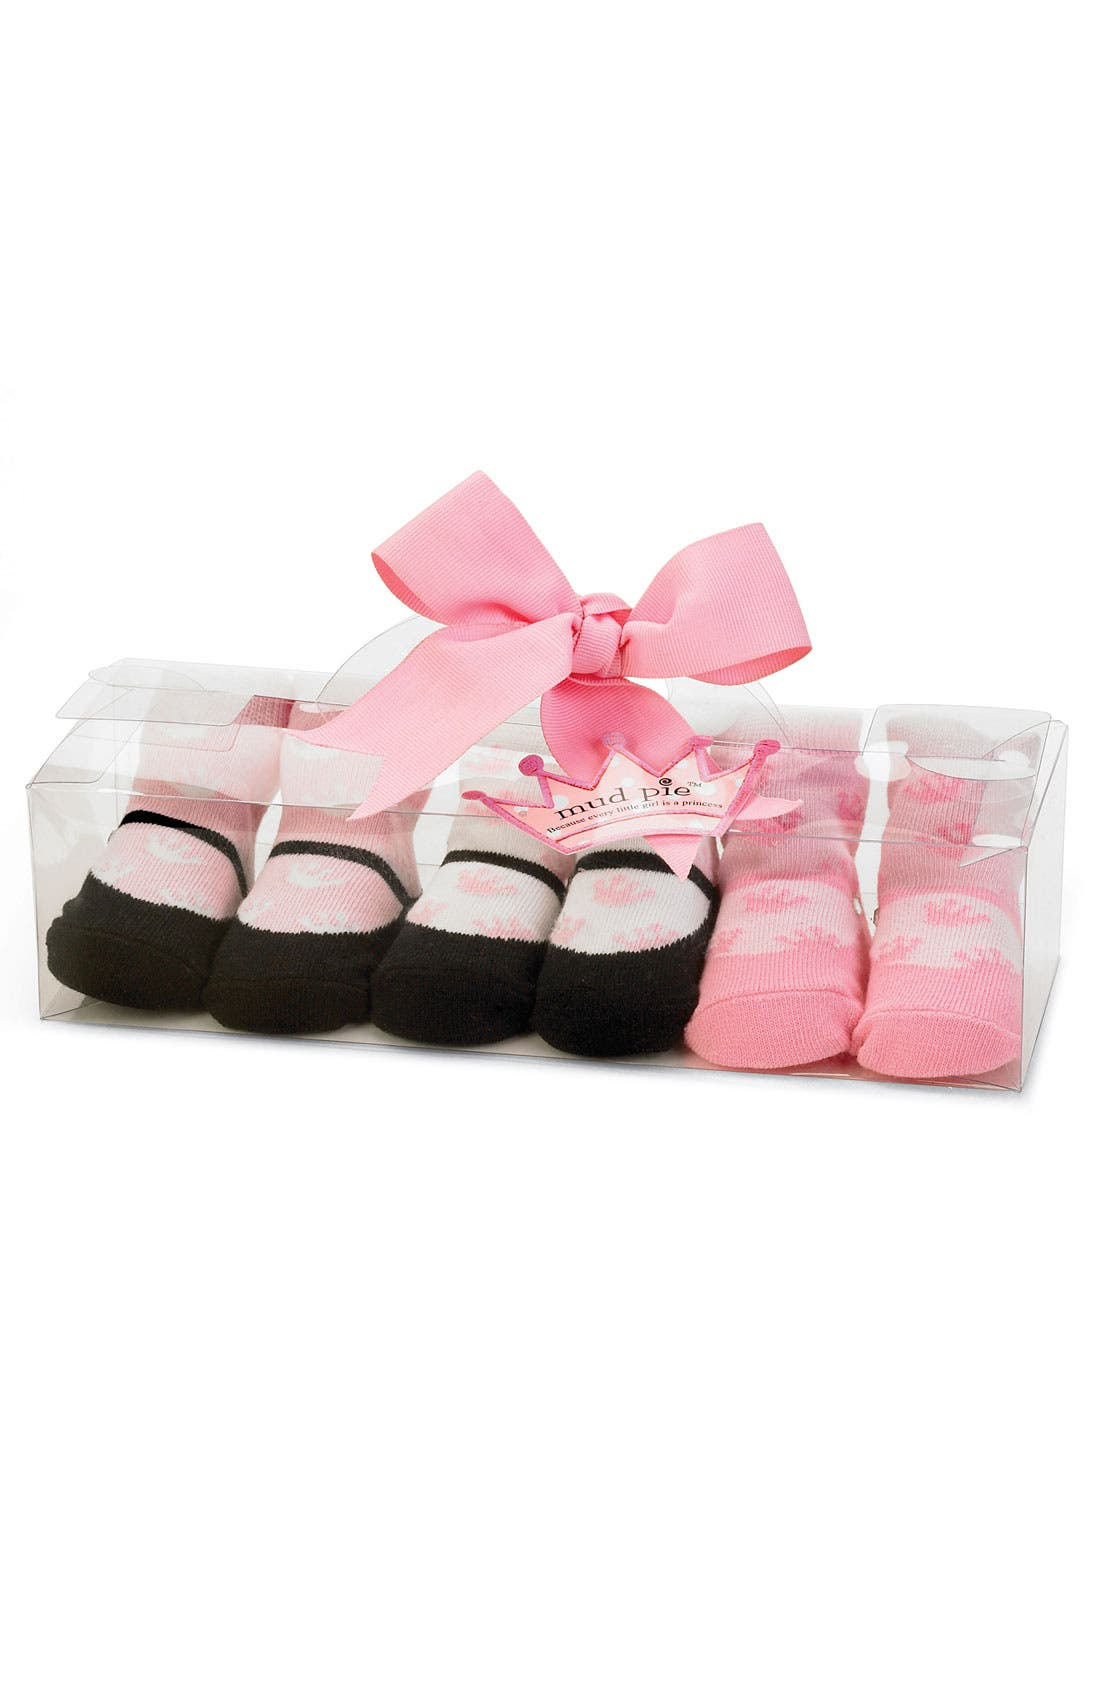 Alternate Image 1 Selected - Mud Pie Socks Set (3-Pack) (Baby Girls)